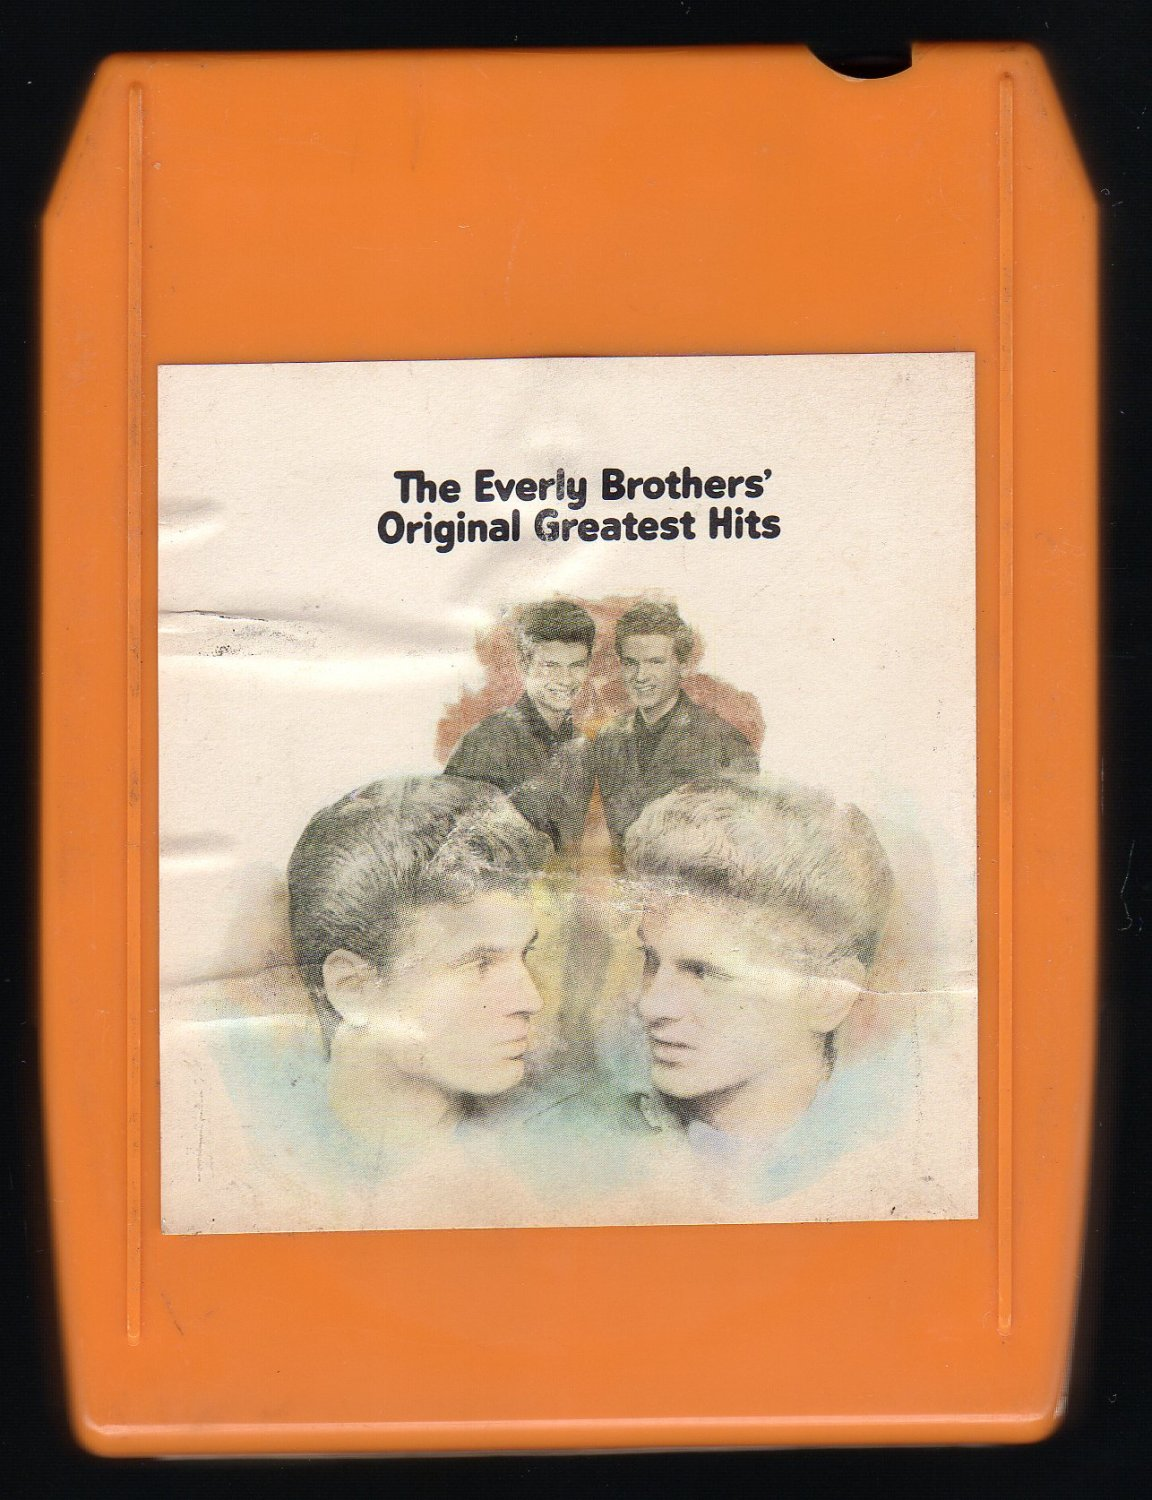 The Everly Brothers - Original Greatest Hits 1970 BARNABY A23 8-TRACK TAPE